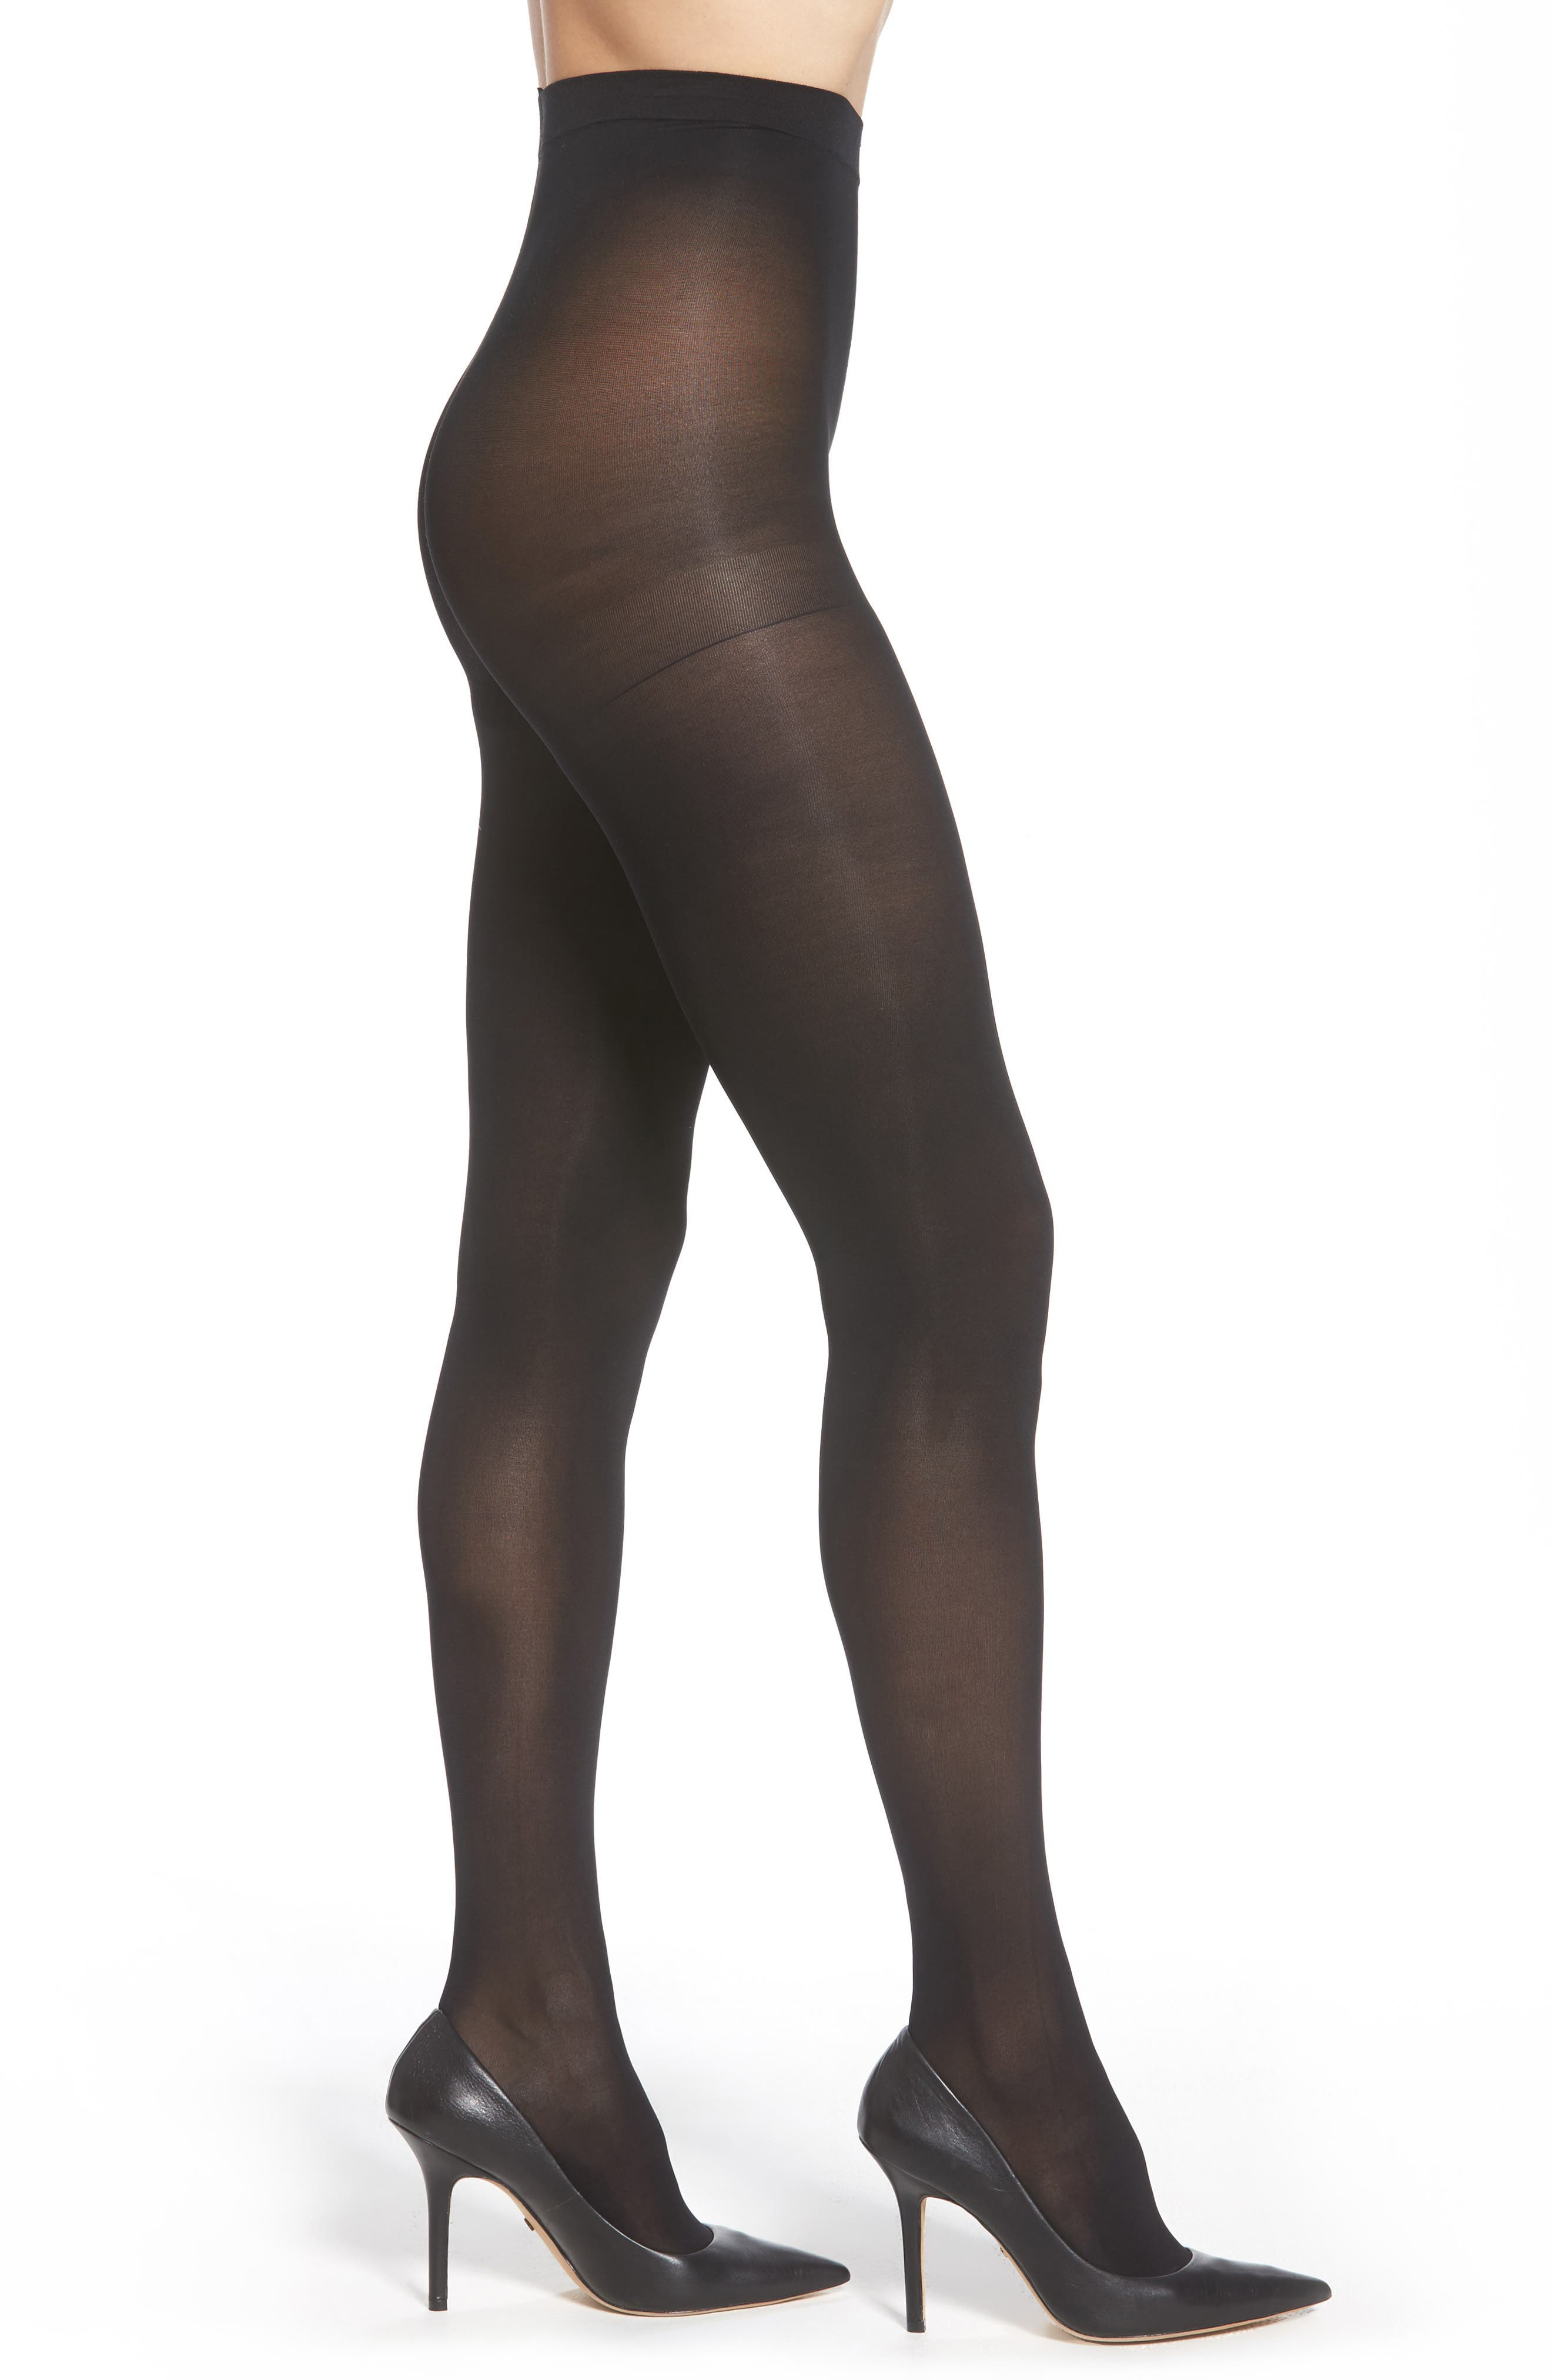 Nordstrom Opaque Control Top Tights